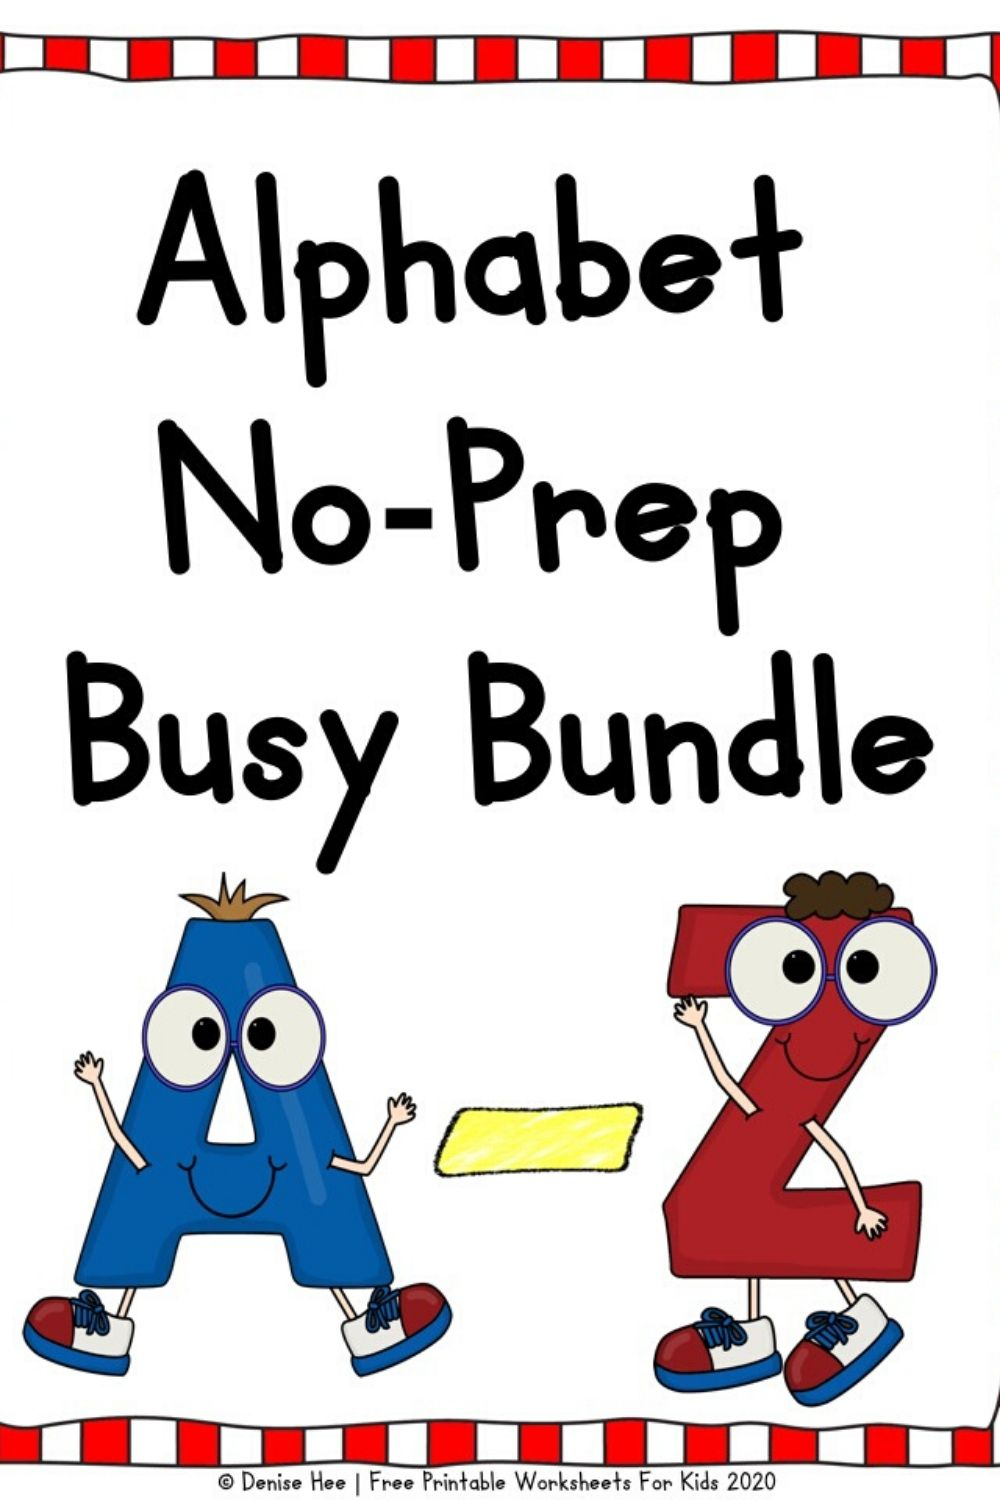 600+ pages of alphabet activities including playdough mats, handwriting practice, latter recognition, letter case sorting, do-a-dot, q tip painting, drawing, punch cards, beginning sound clip cards, etc. Teach your preschooler the letters and their sounds with this fun pack.